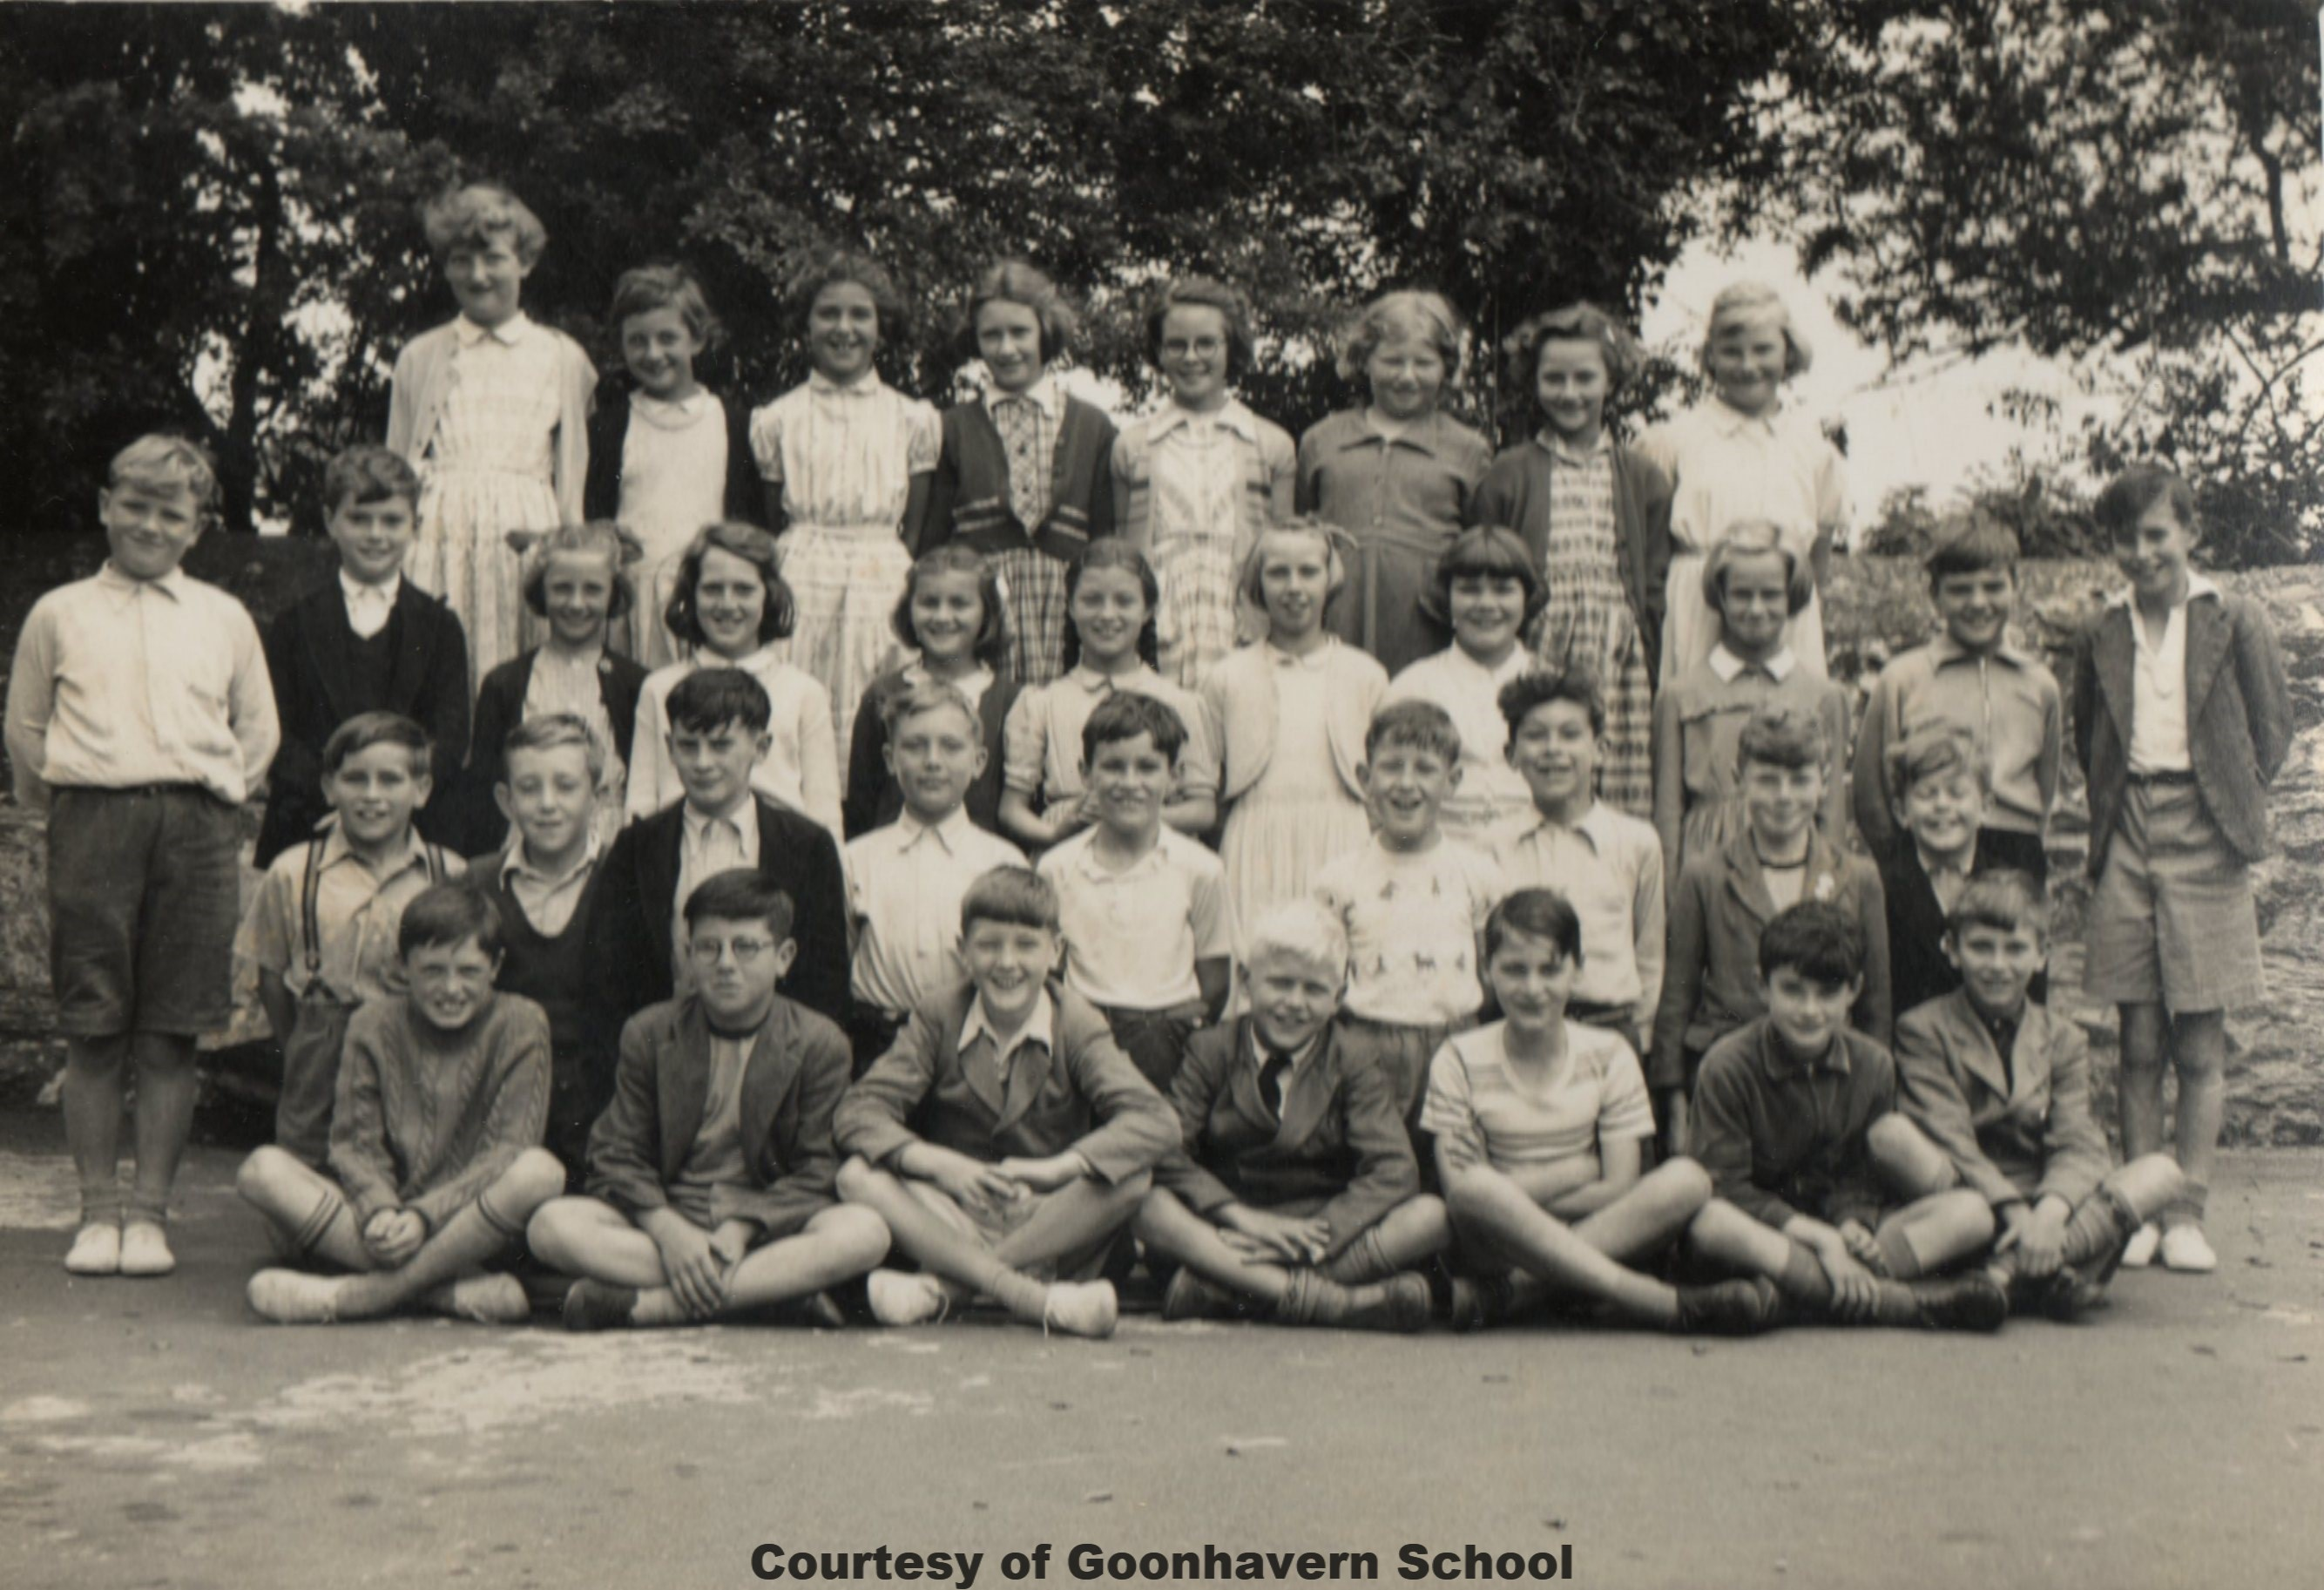 Goonhavern School Classes - Circa 1955-56